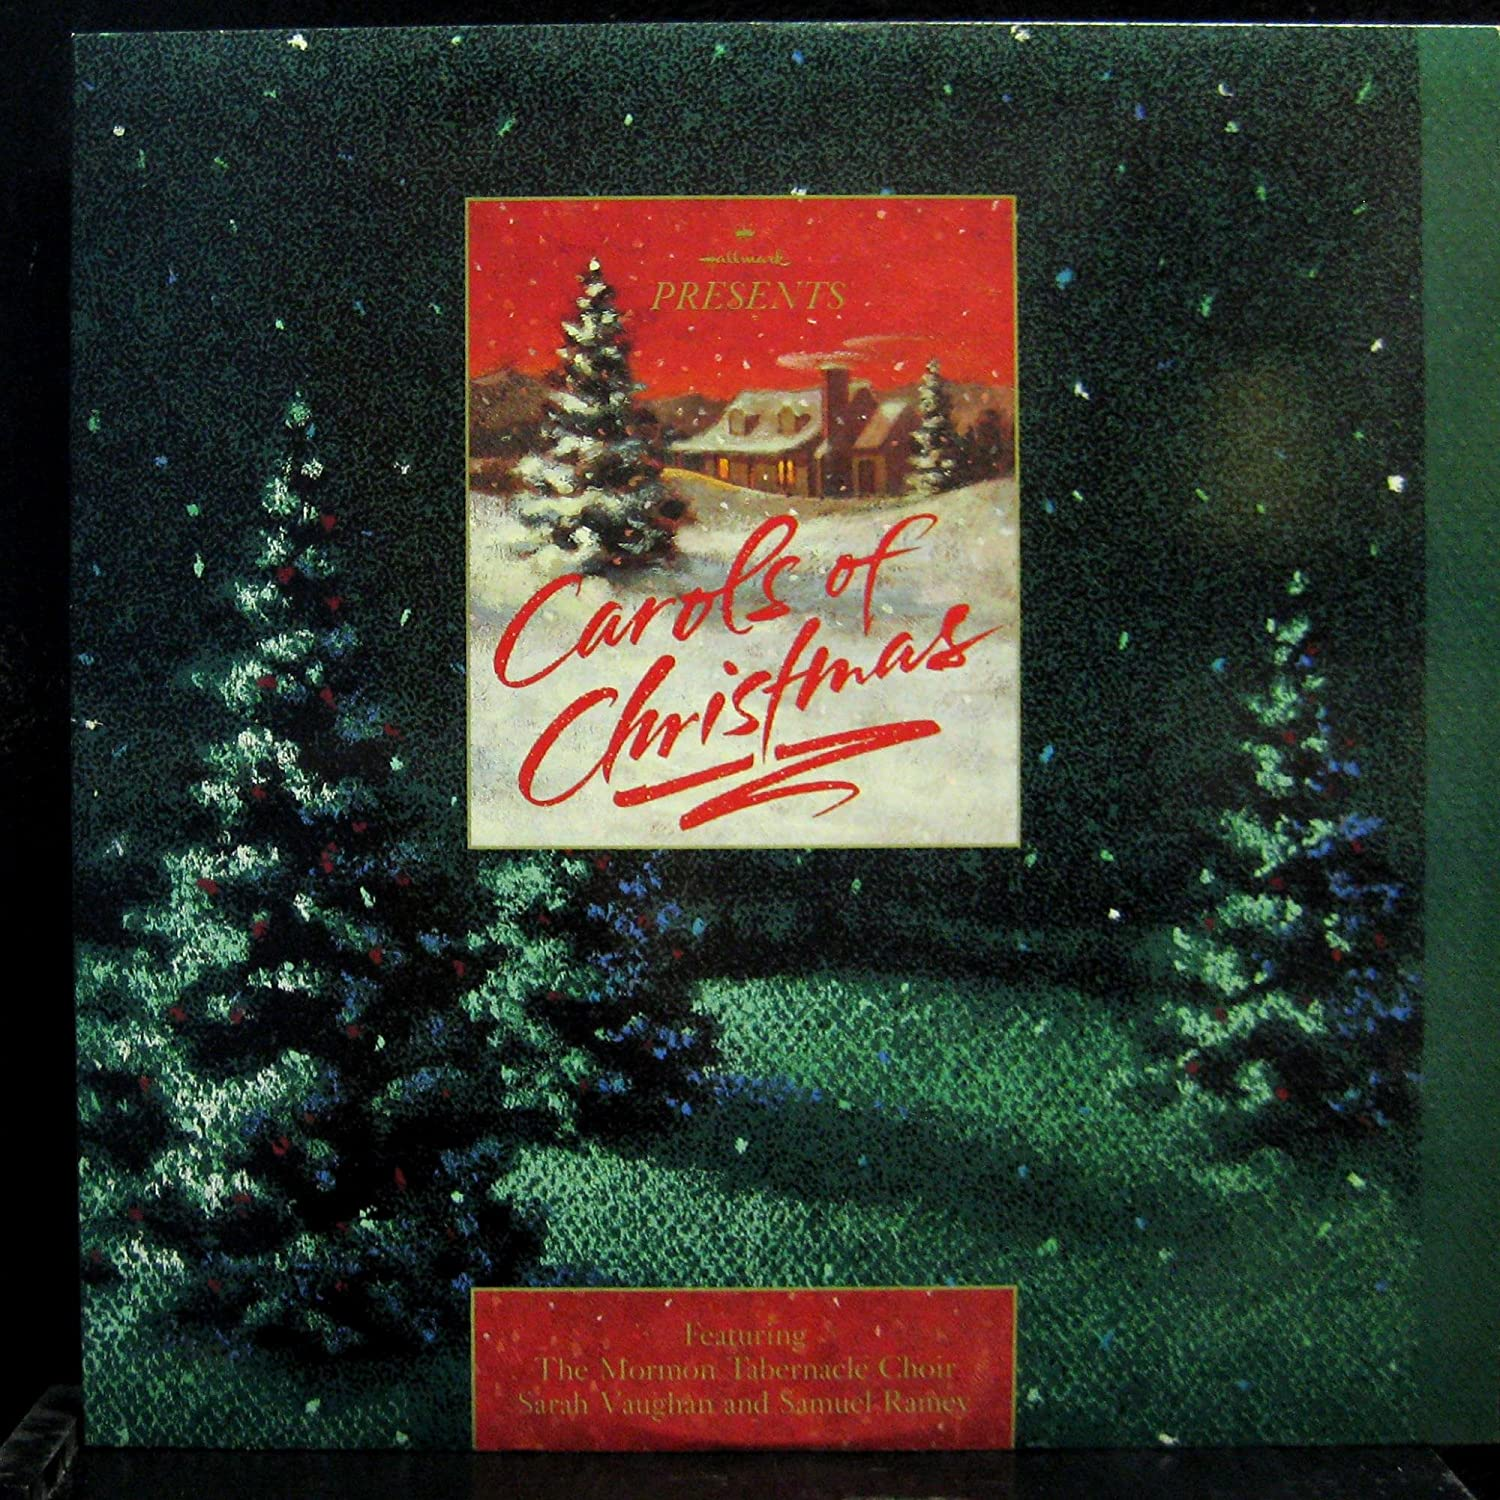 Mormon Tabernacle Choir Christmas 2020 Sarah Mormon Tabernacle Choir, Sarah Vaughan, Samuel Ramey   Carols of